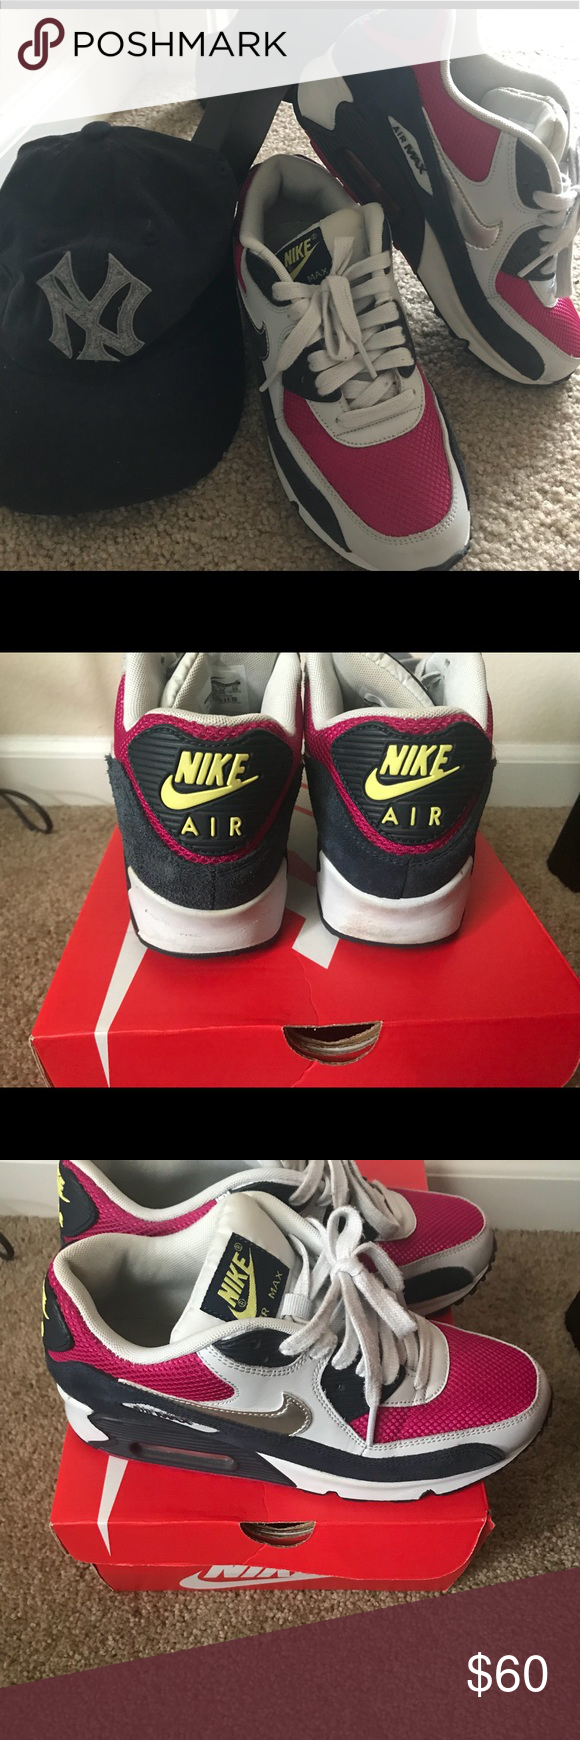 super popular fd81b 23088 Nike air max 9.0 Gently used with some minor signs of wear ...